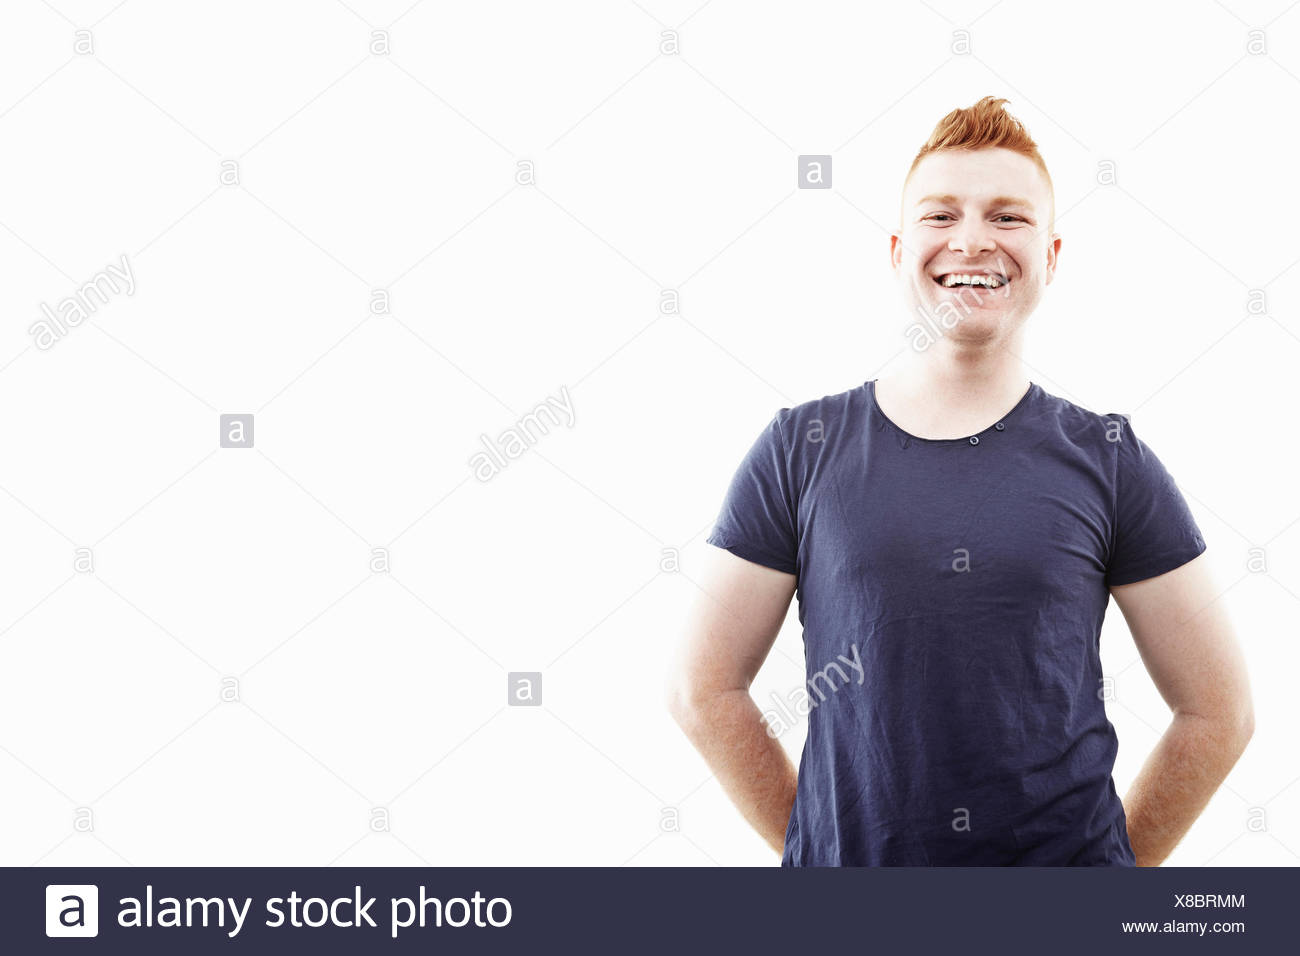 Studio portrait of young man smiling - Stock Image